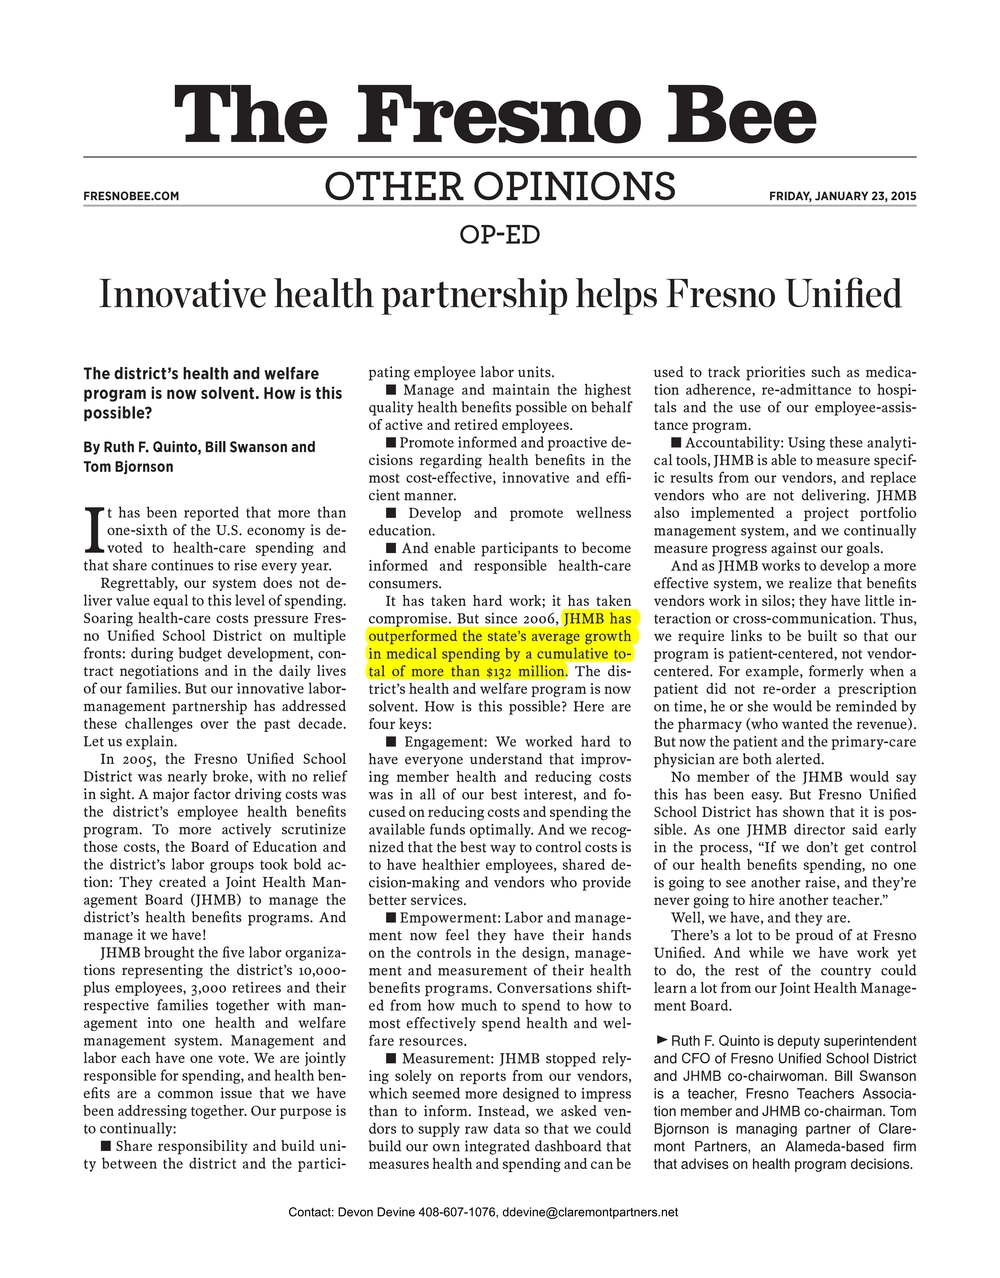 Innovative health partnership